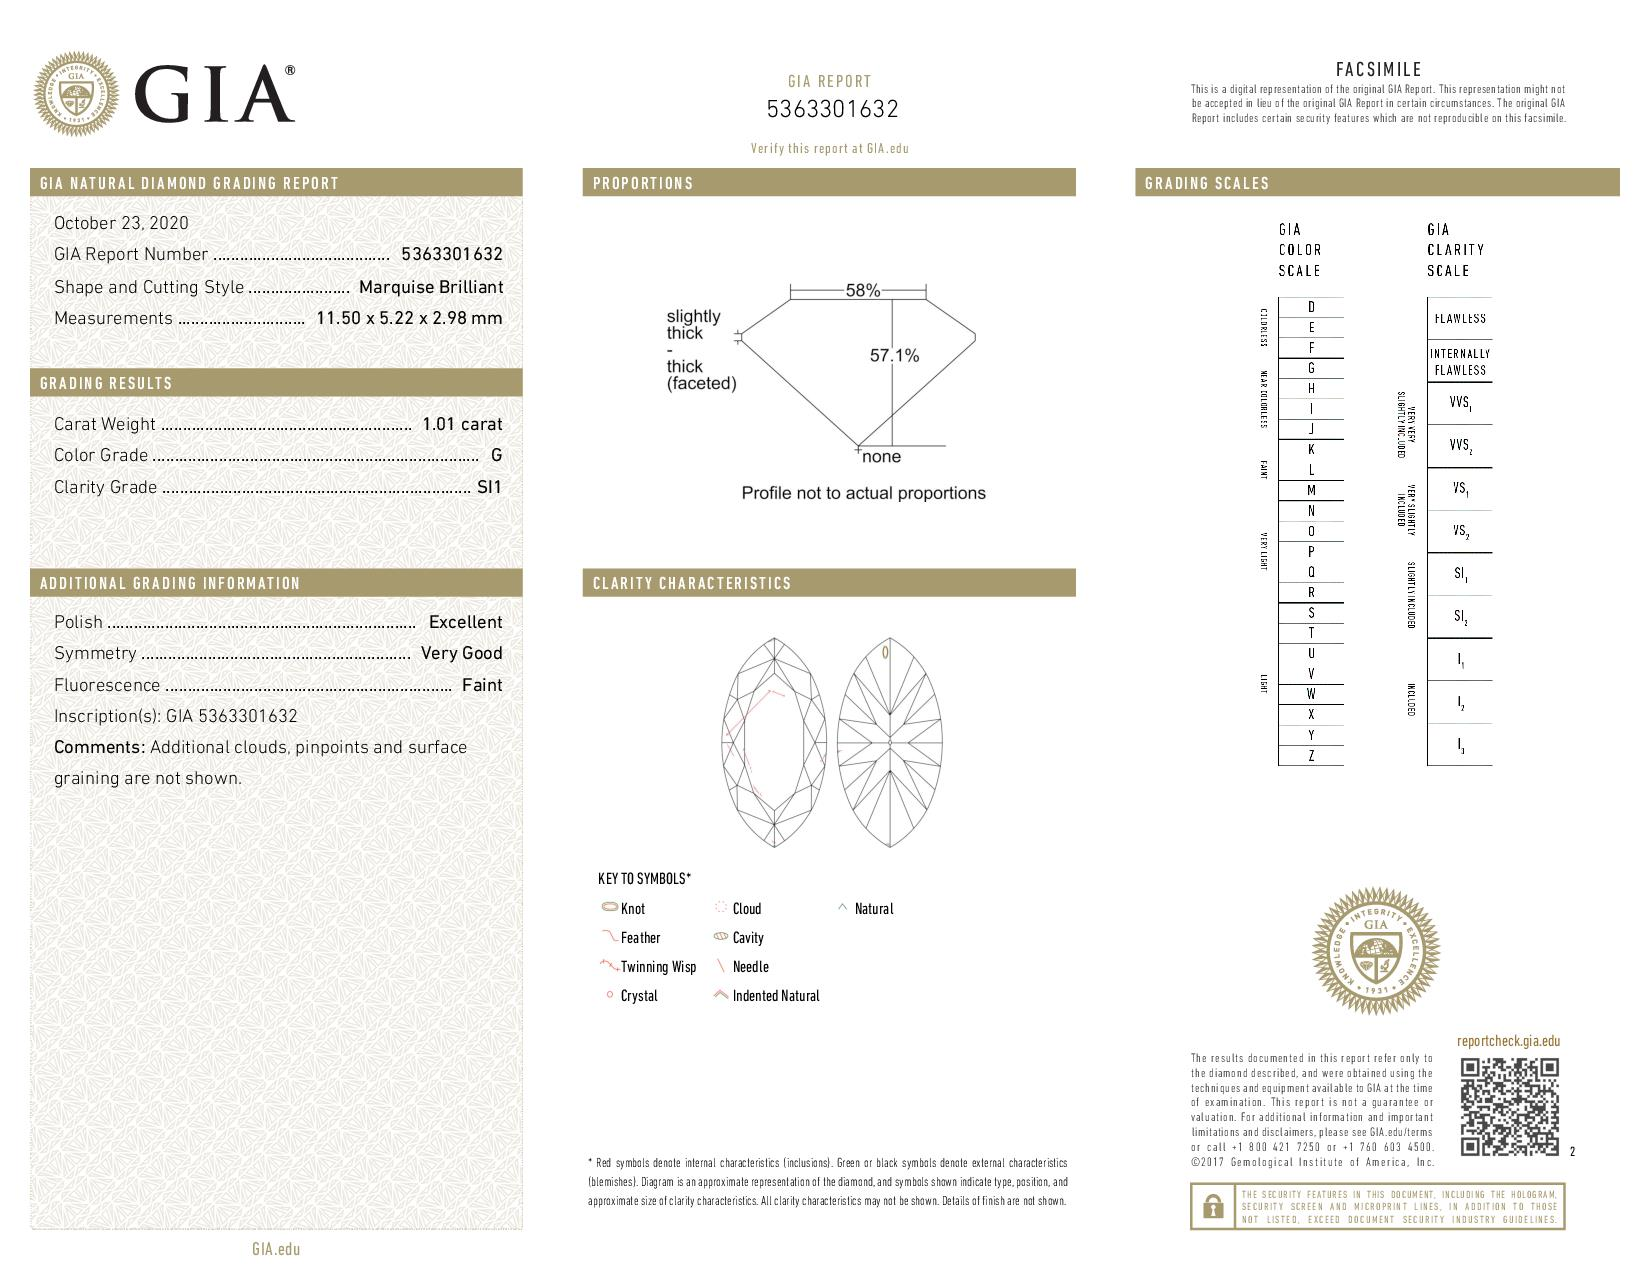 This is a 1.01 carat marquise shape, G color, SI1 clarity natural diamond accompanied by a GIA grading report.